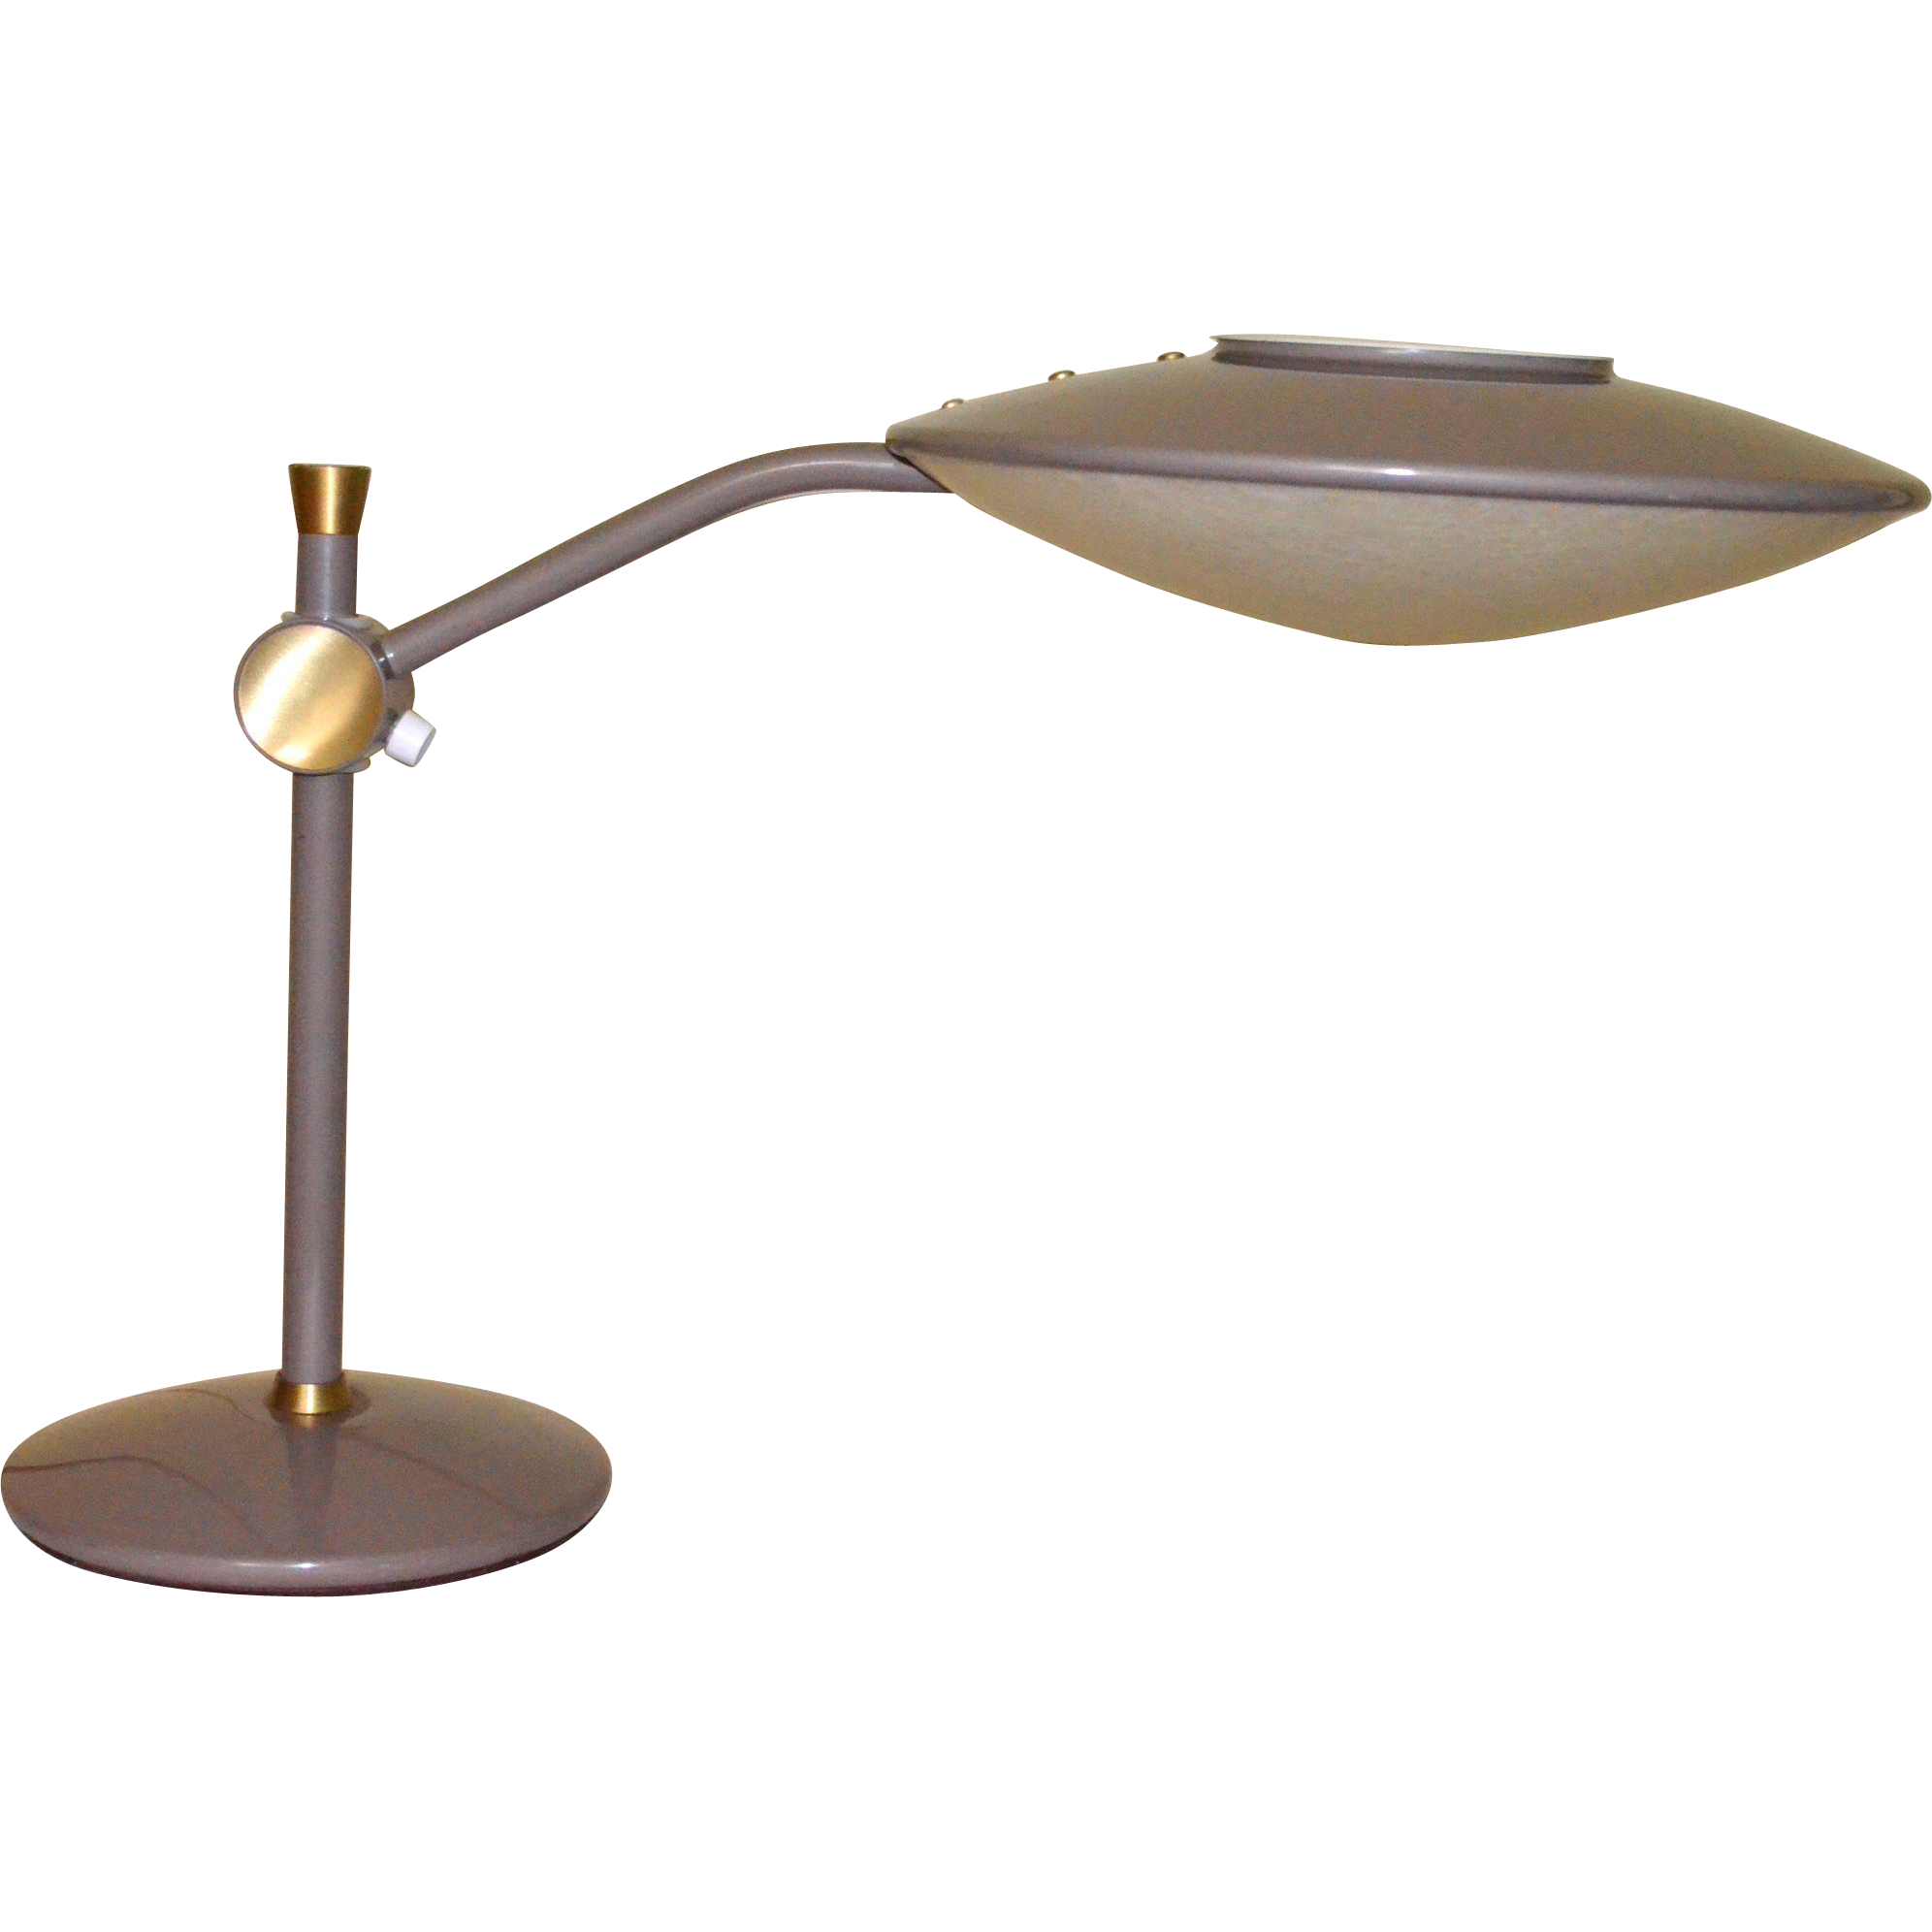 Dazor Model 2008 Mid Century Modern Desk Lamp From